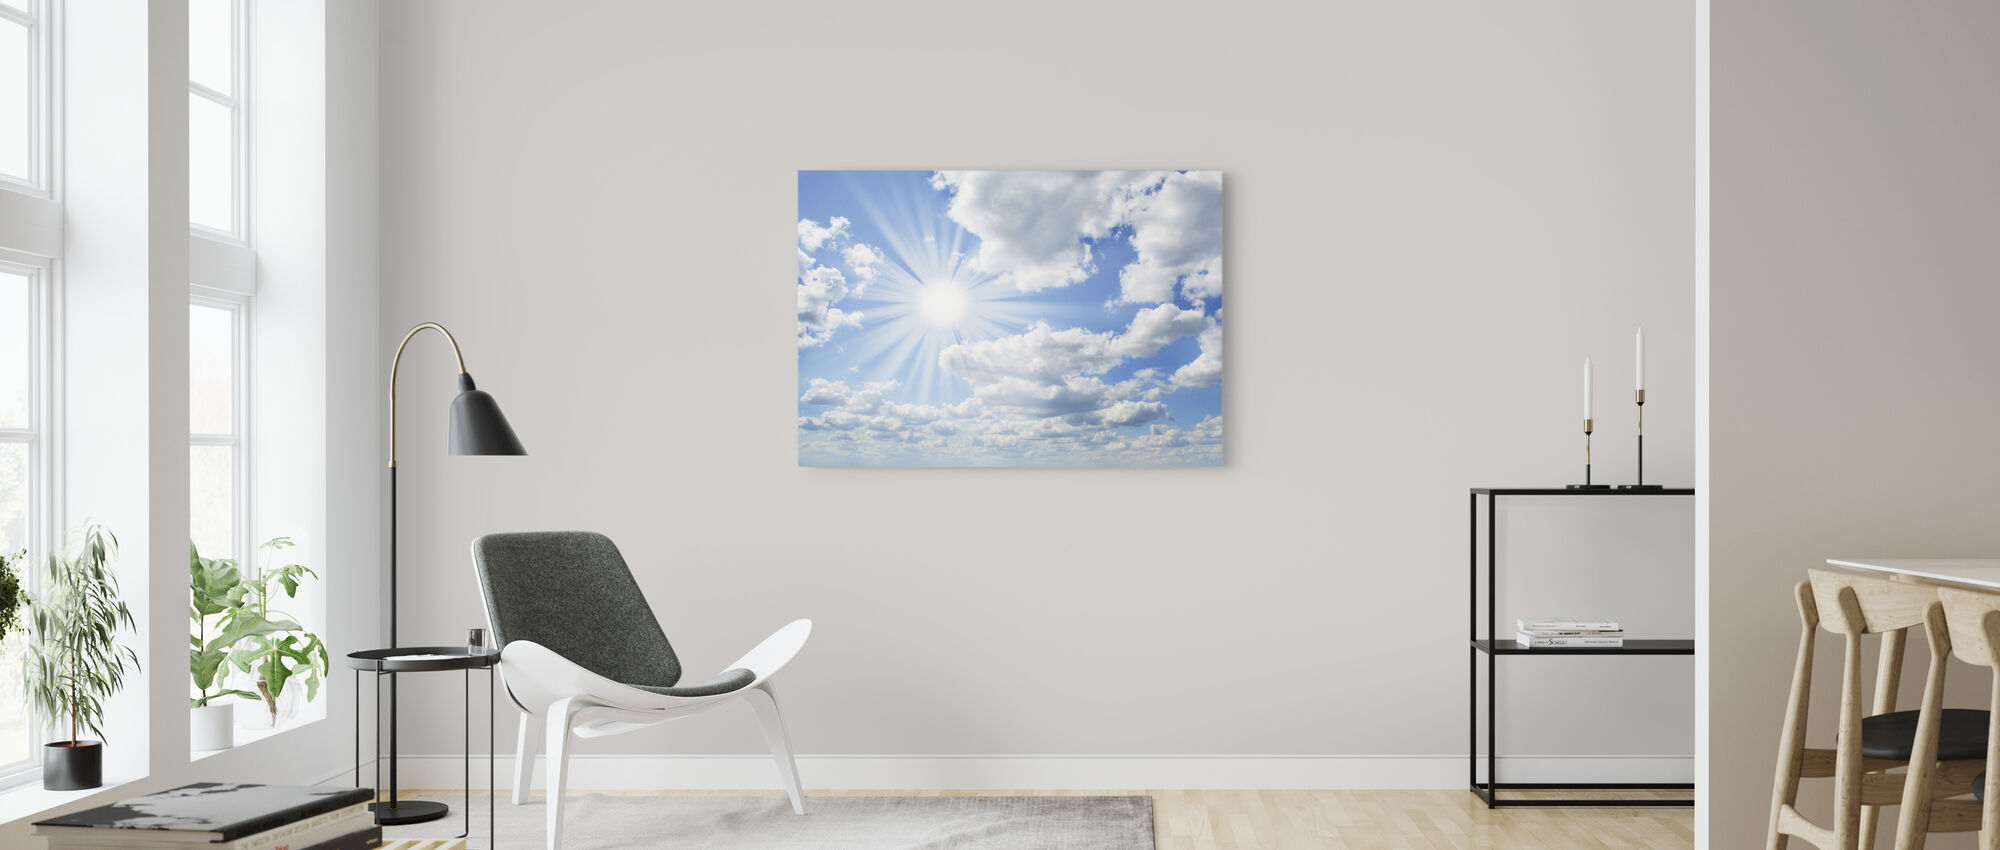 Sunny Day - Canvas print - Living Room